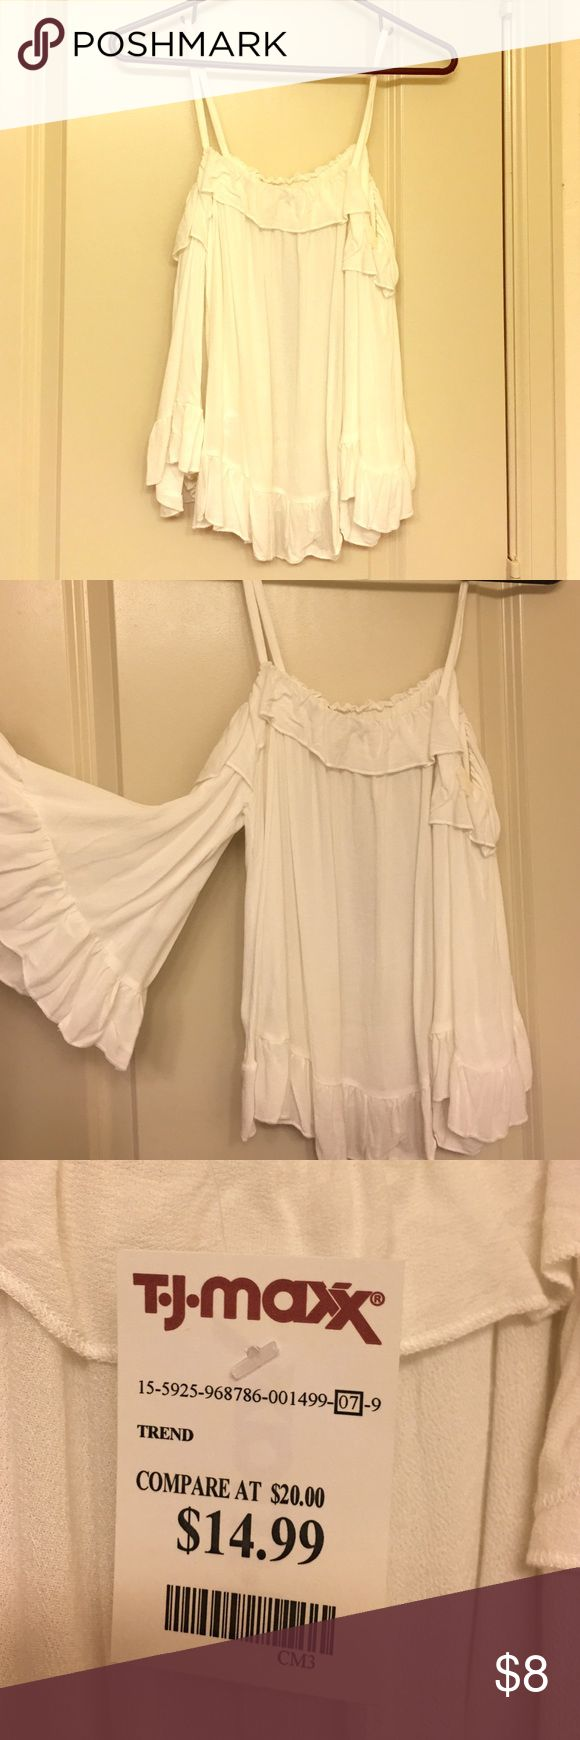 Tj max flowy top NWT. Size M. tagged Macy's for views! Model is a size 6! Macy's Tops Blouses